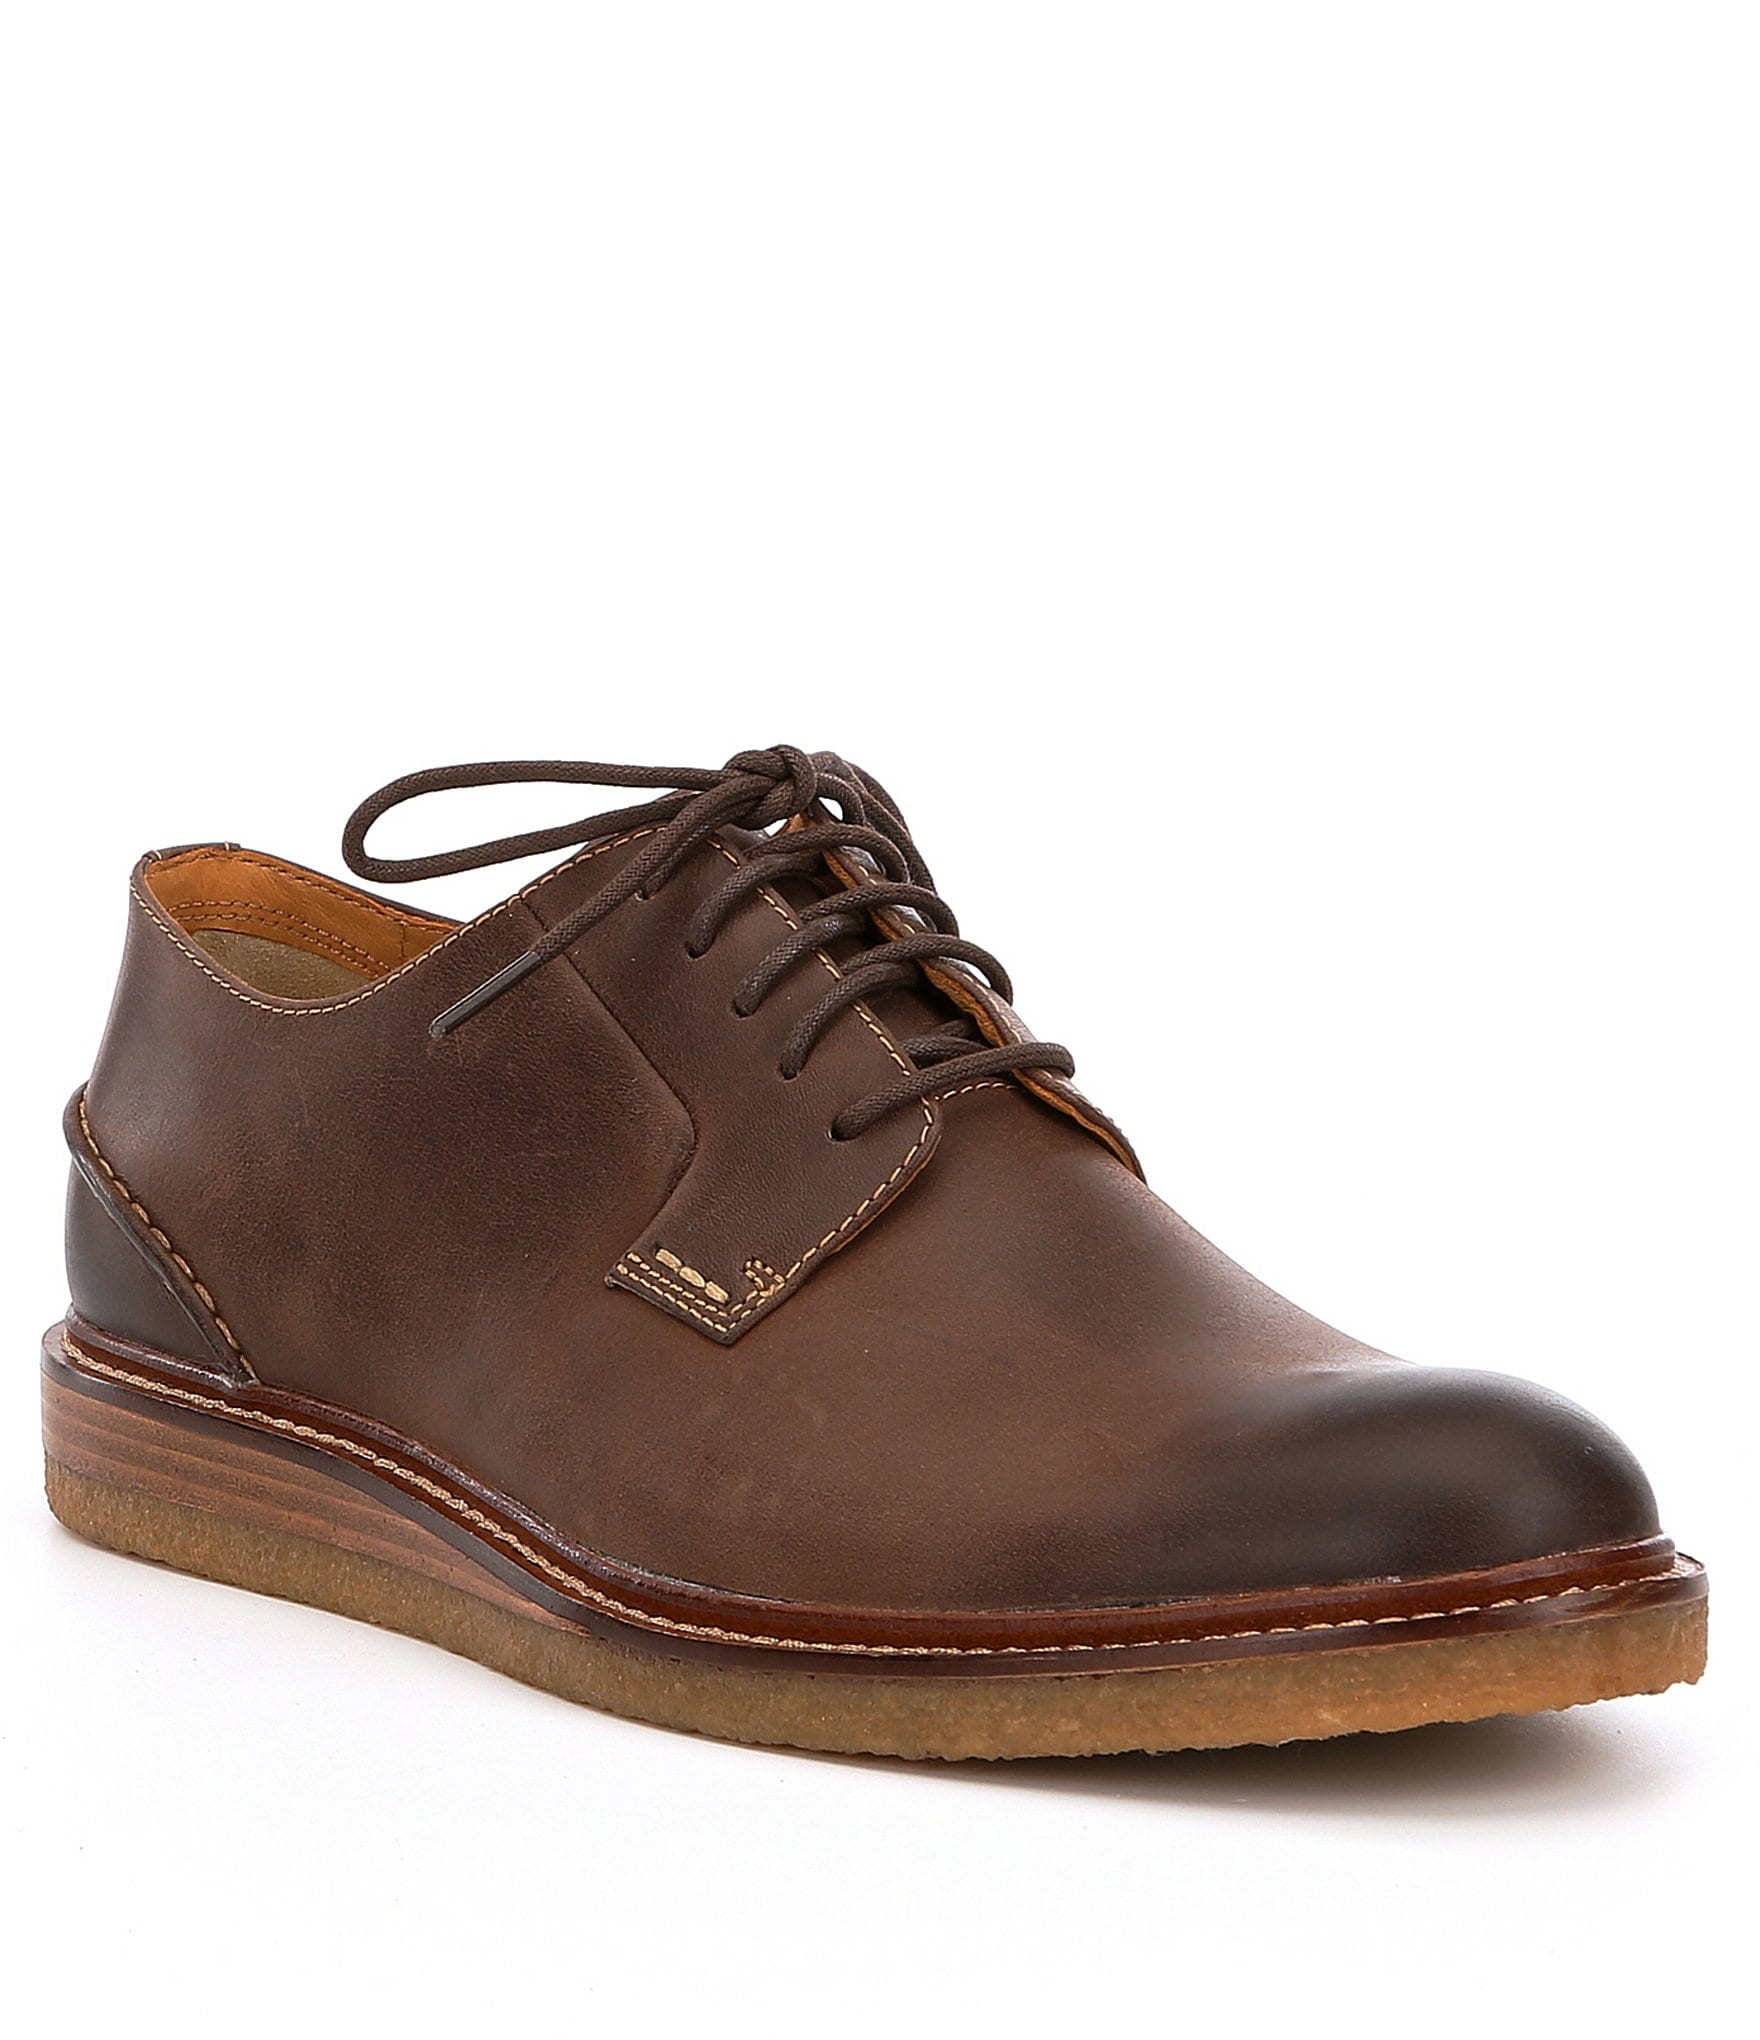 Mens Oxford Shoes Clearance